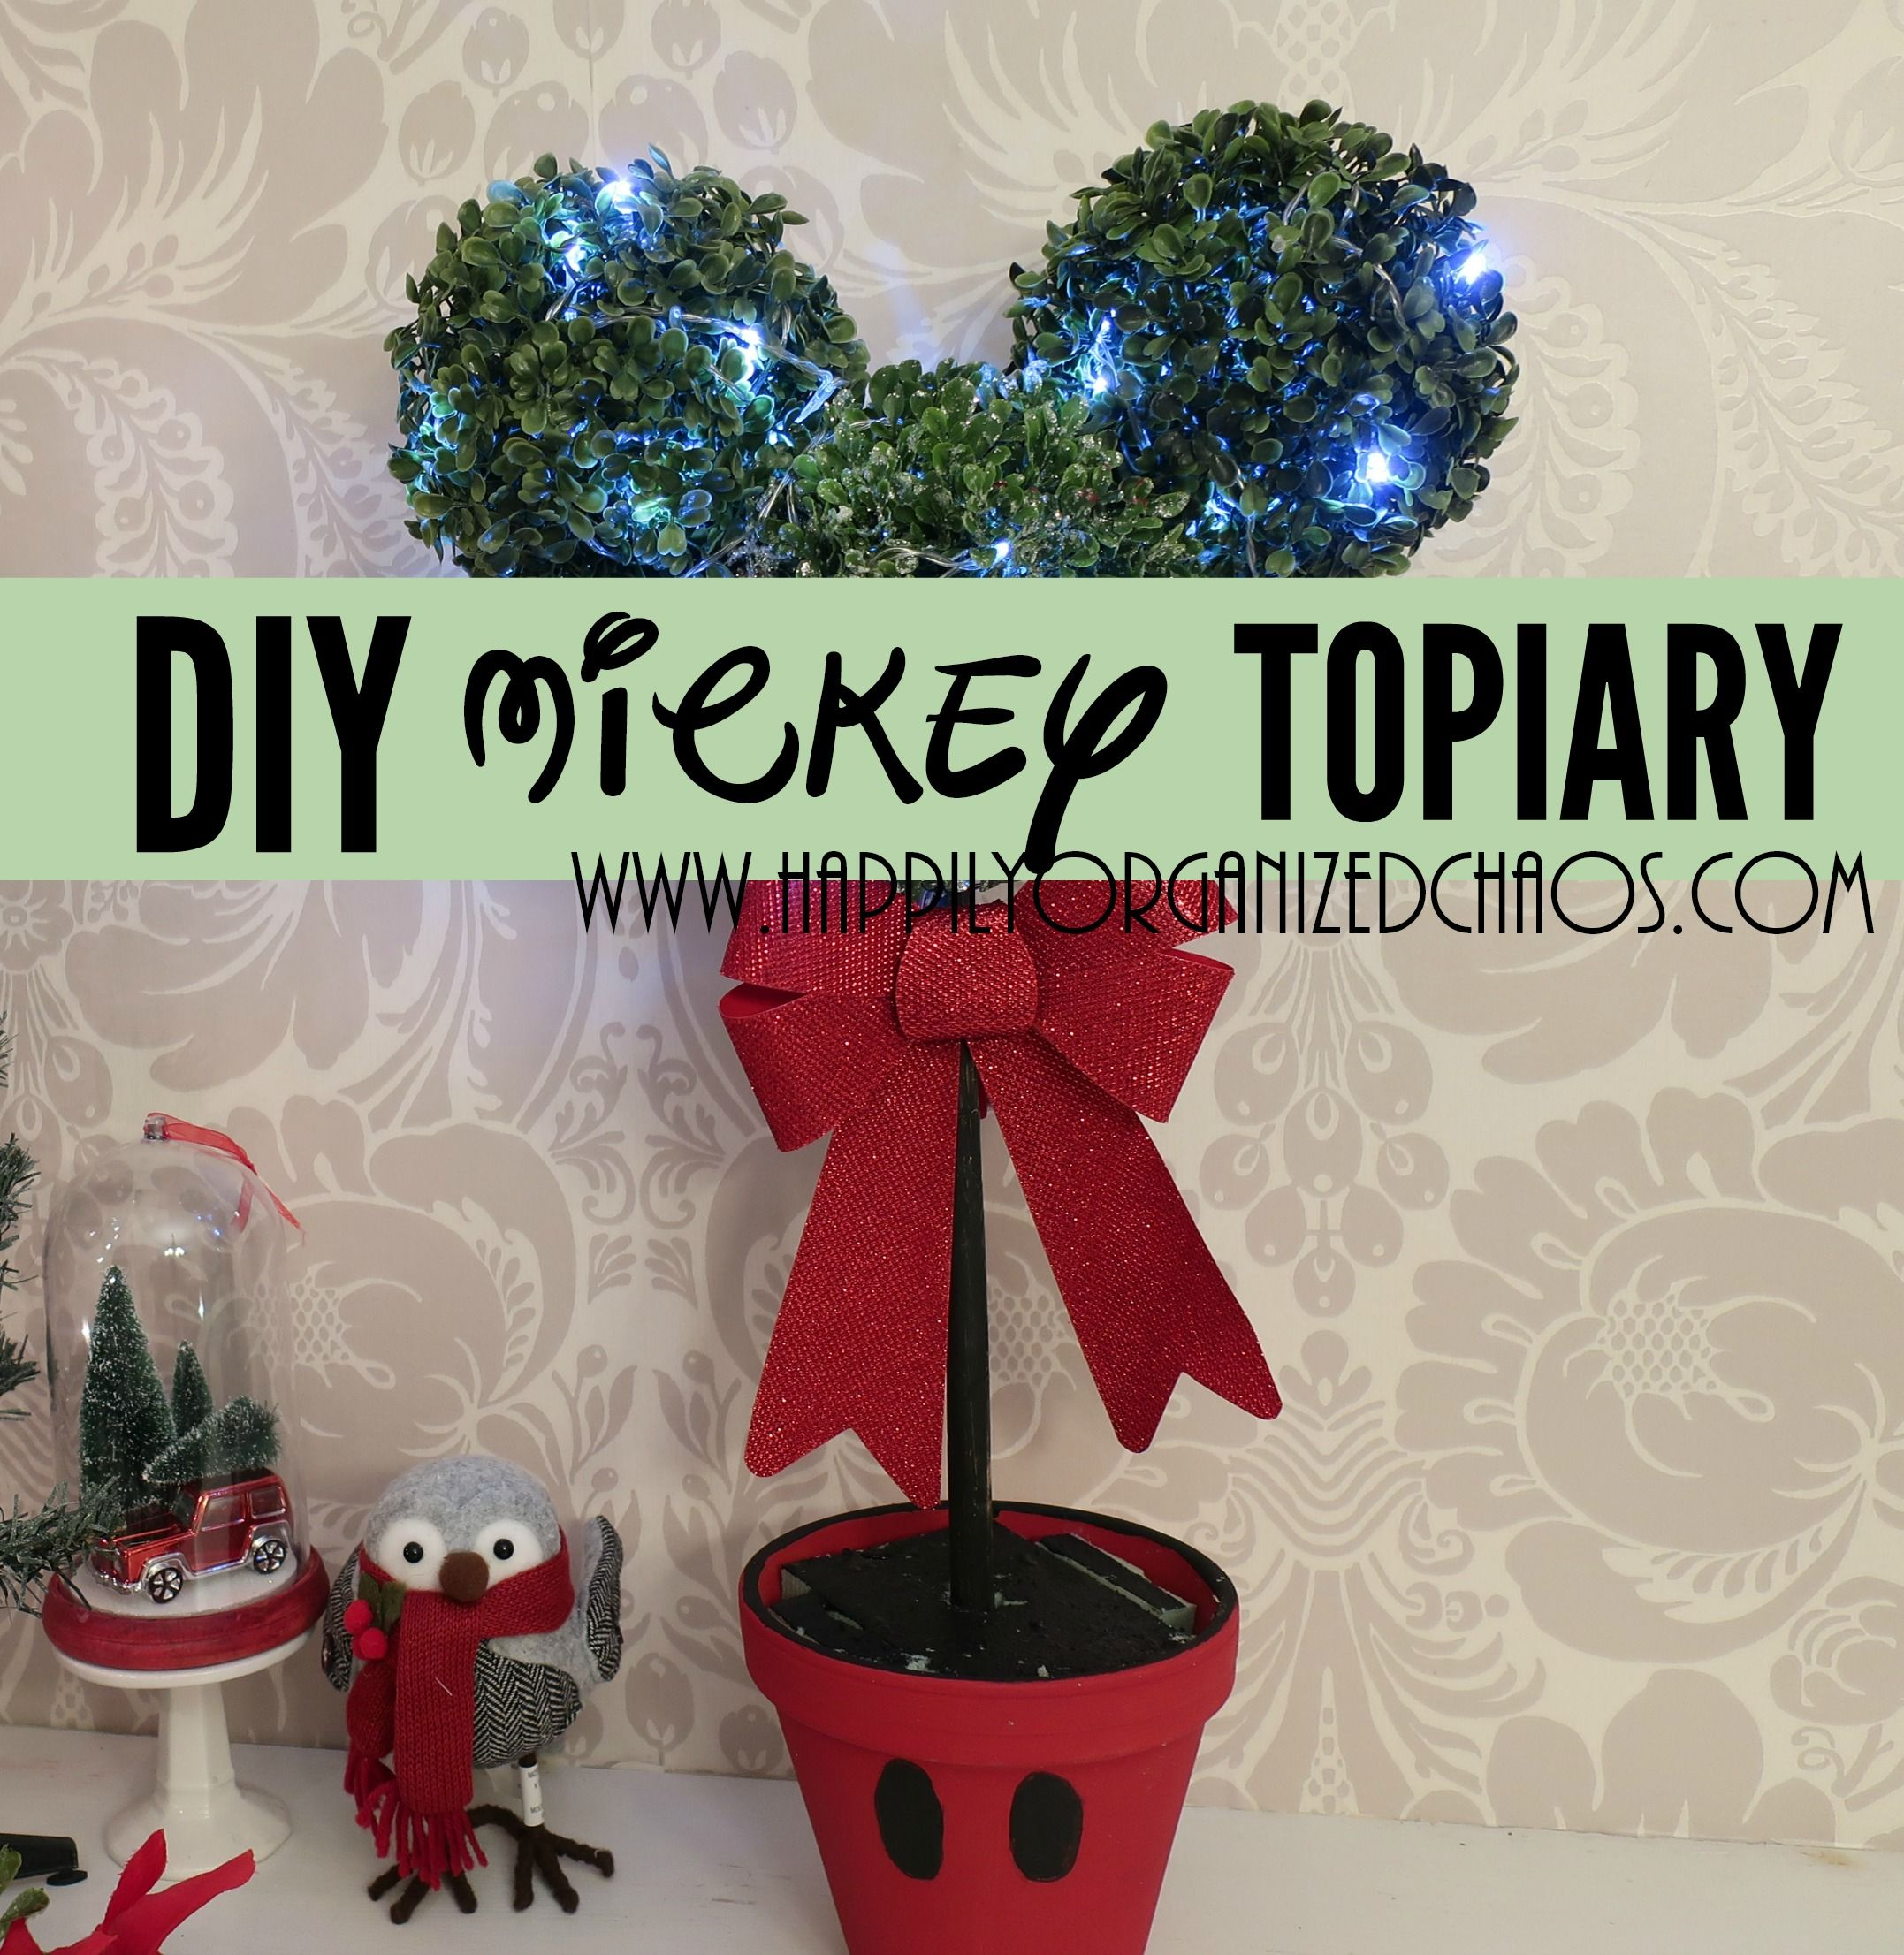 Do You Love Disney Mickey Mouse Well Then Look Now Further See How I Create The Lowe S Topiary For A Fraction Of Cost